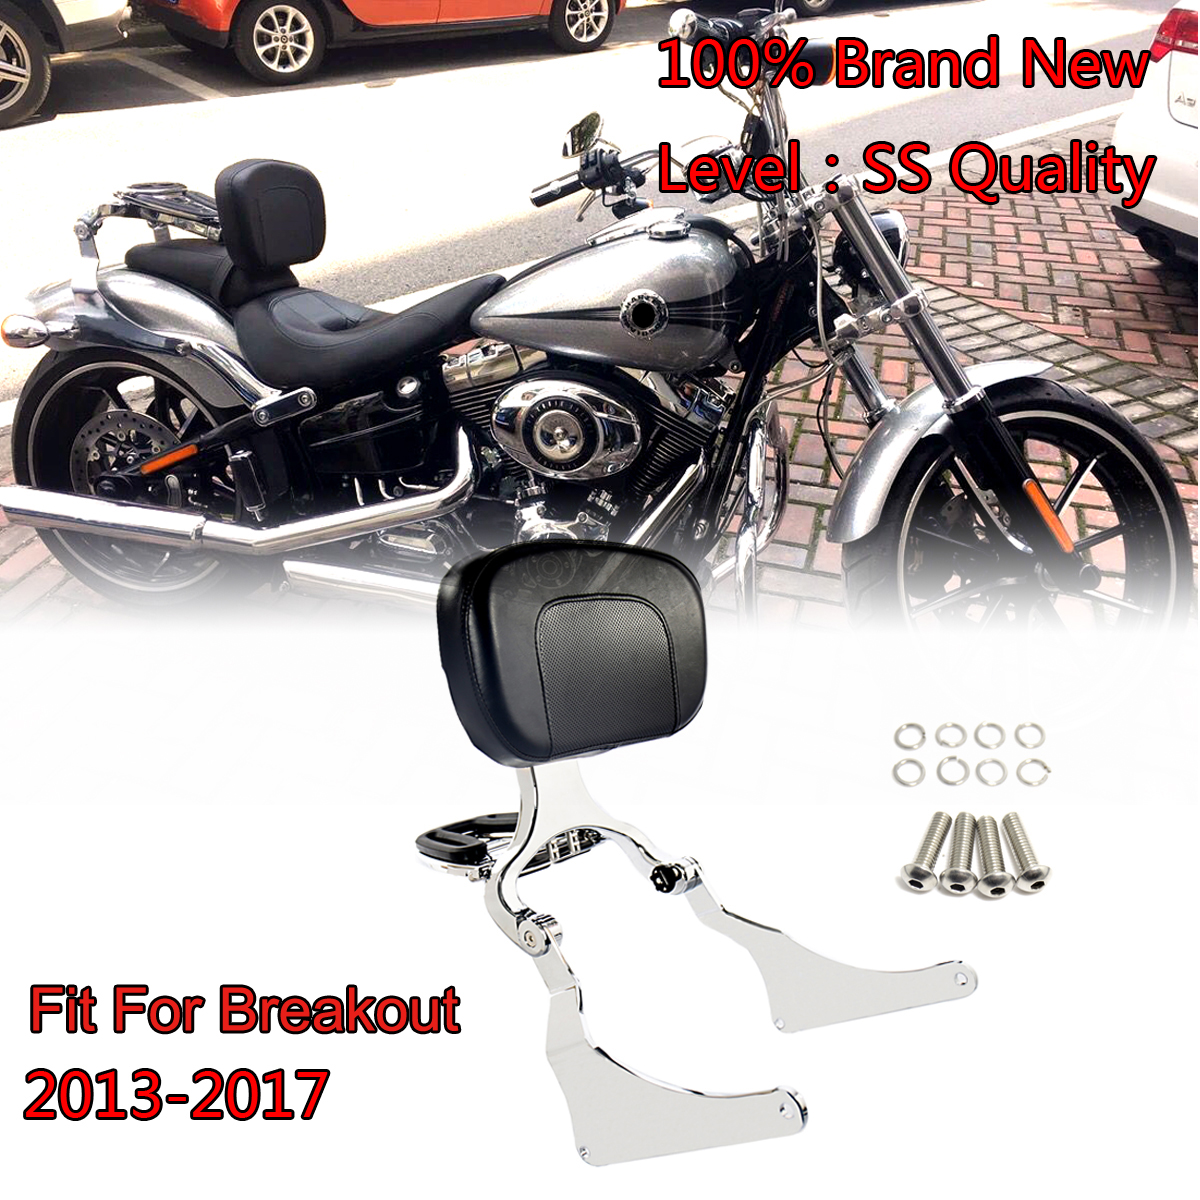 Chrome High Quality Fixed Mount Multi Purpose Adjustable Driver Passenger Backrest For Harley 13 17 Breakout